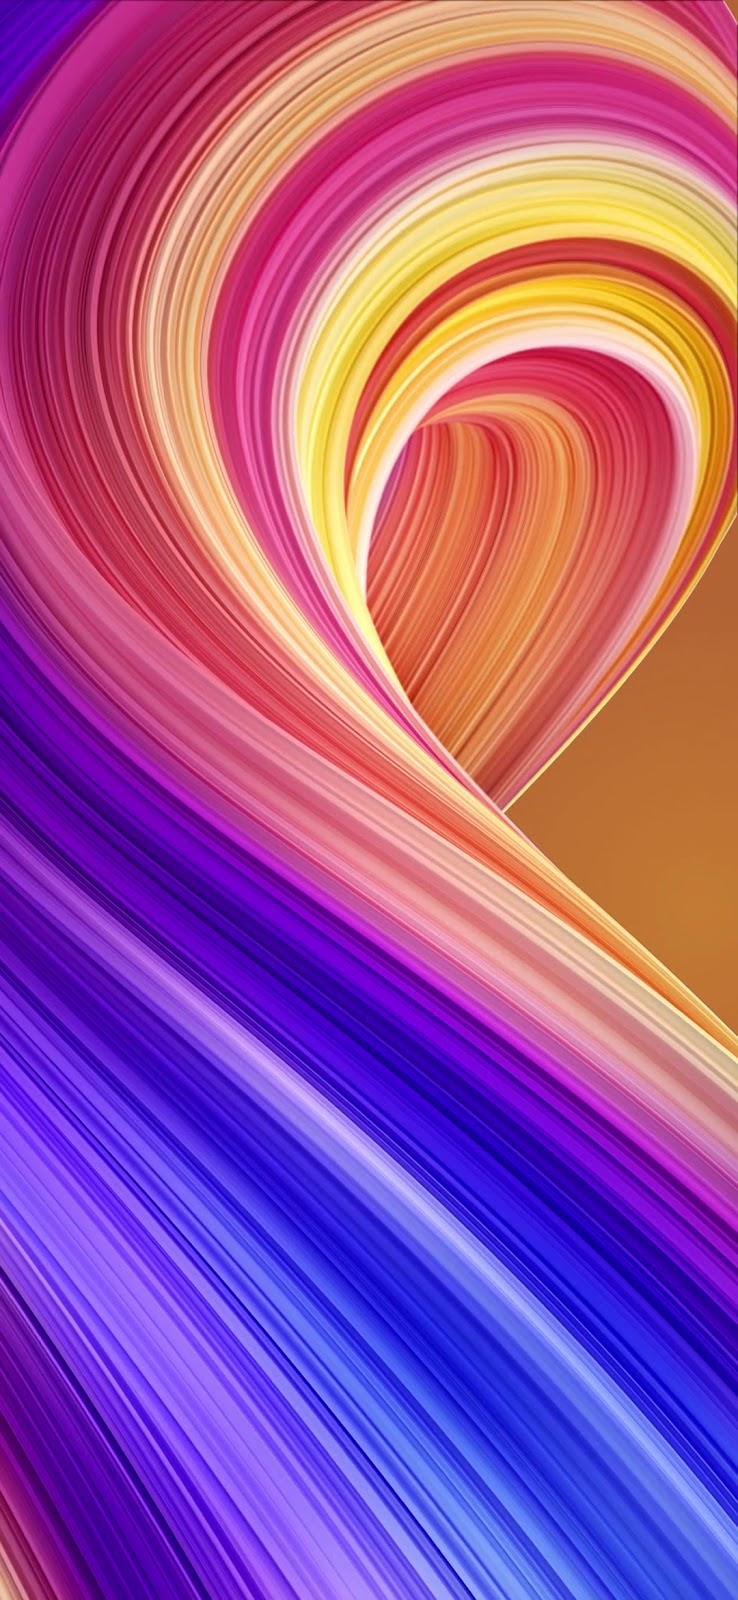 Xiaomi Mi mix 3 full hd wallpaper